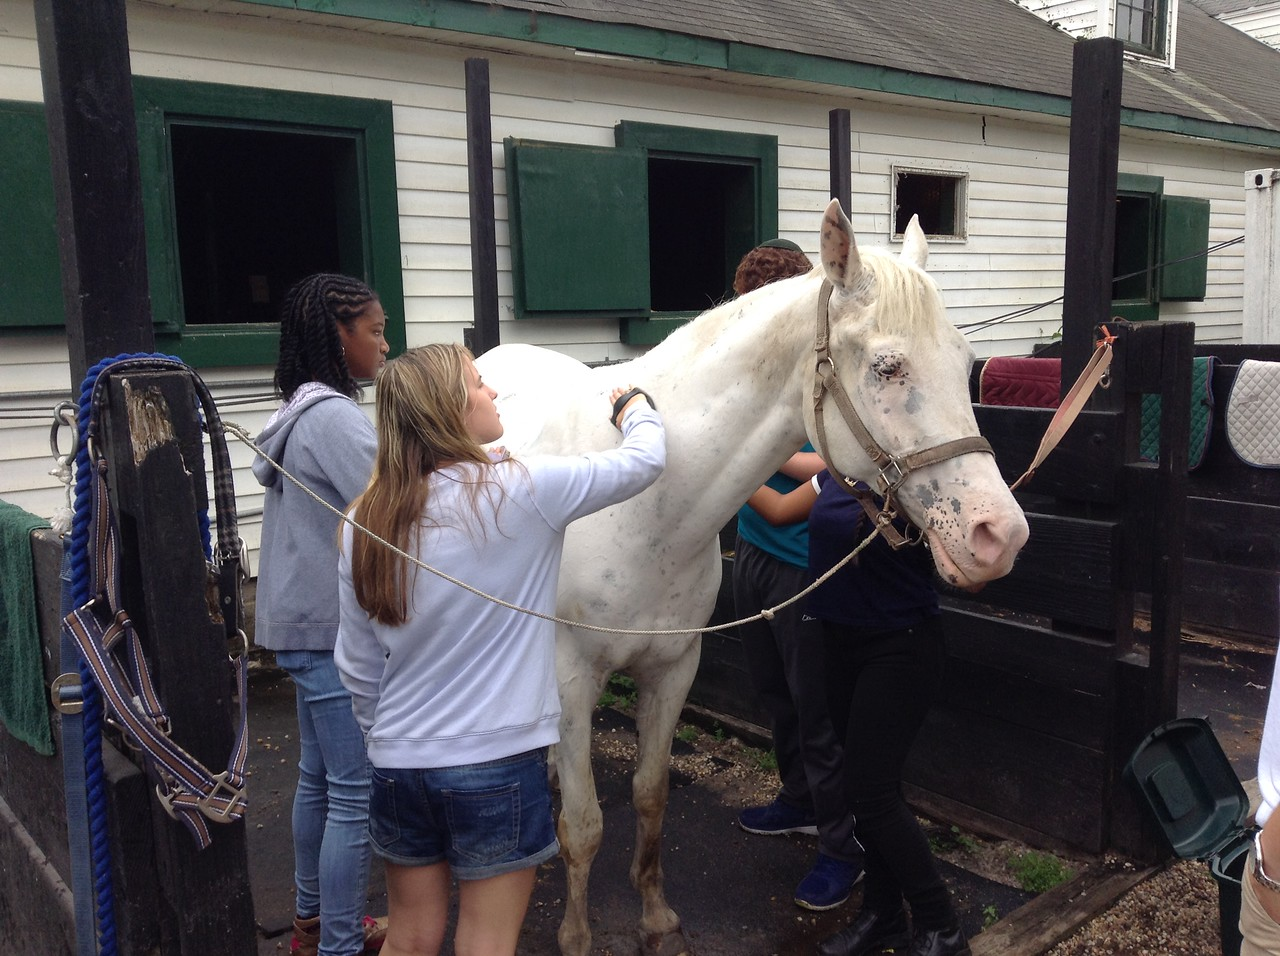 campers with horse